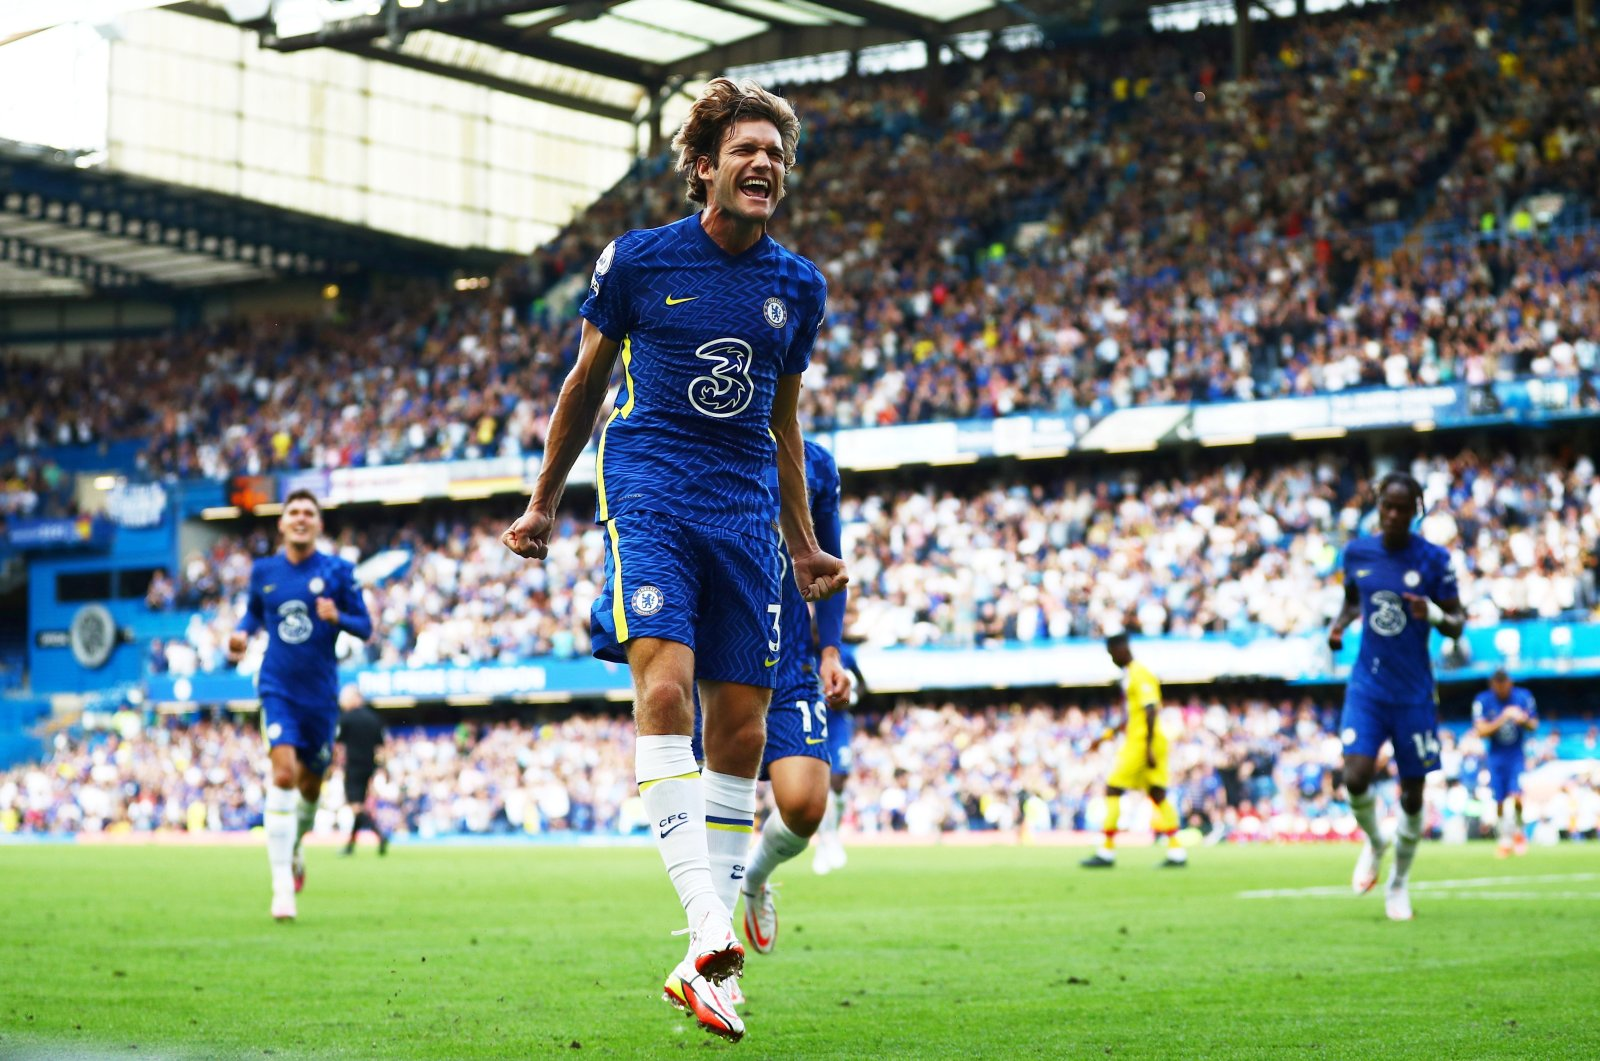 Chelsea's Marcos Alonso celebrates scoring his side's first goal in a Premier League match against Crystal Palace, Stamford Bridge, London, England, Aug. 14, 2021.